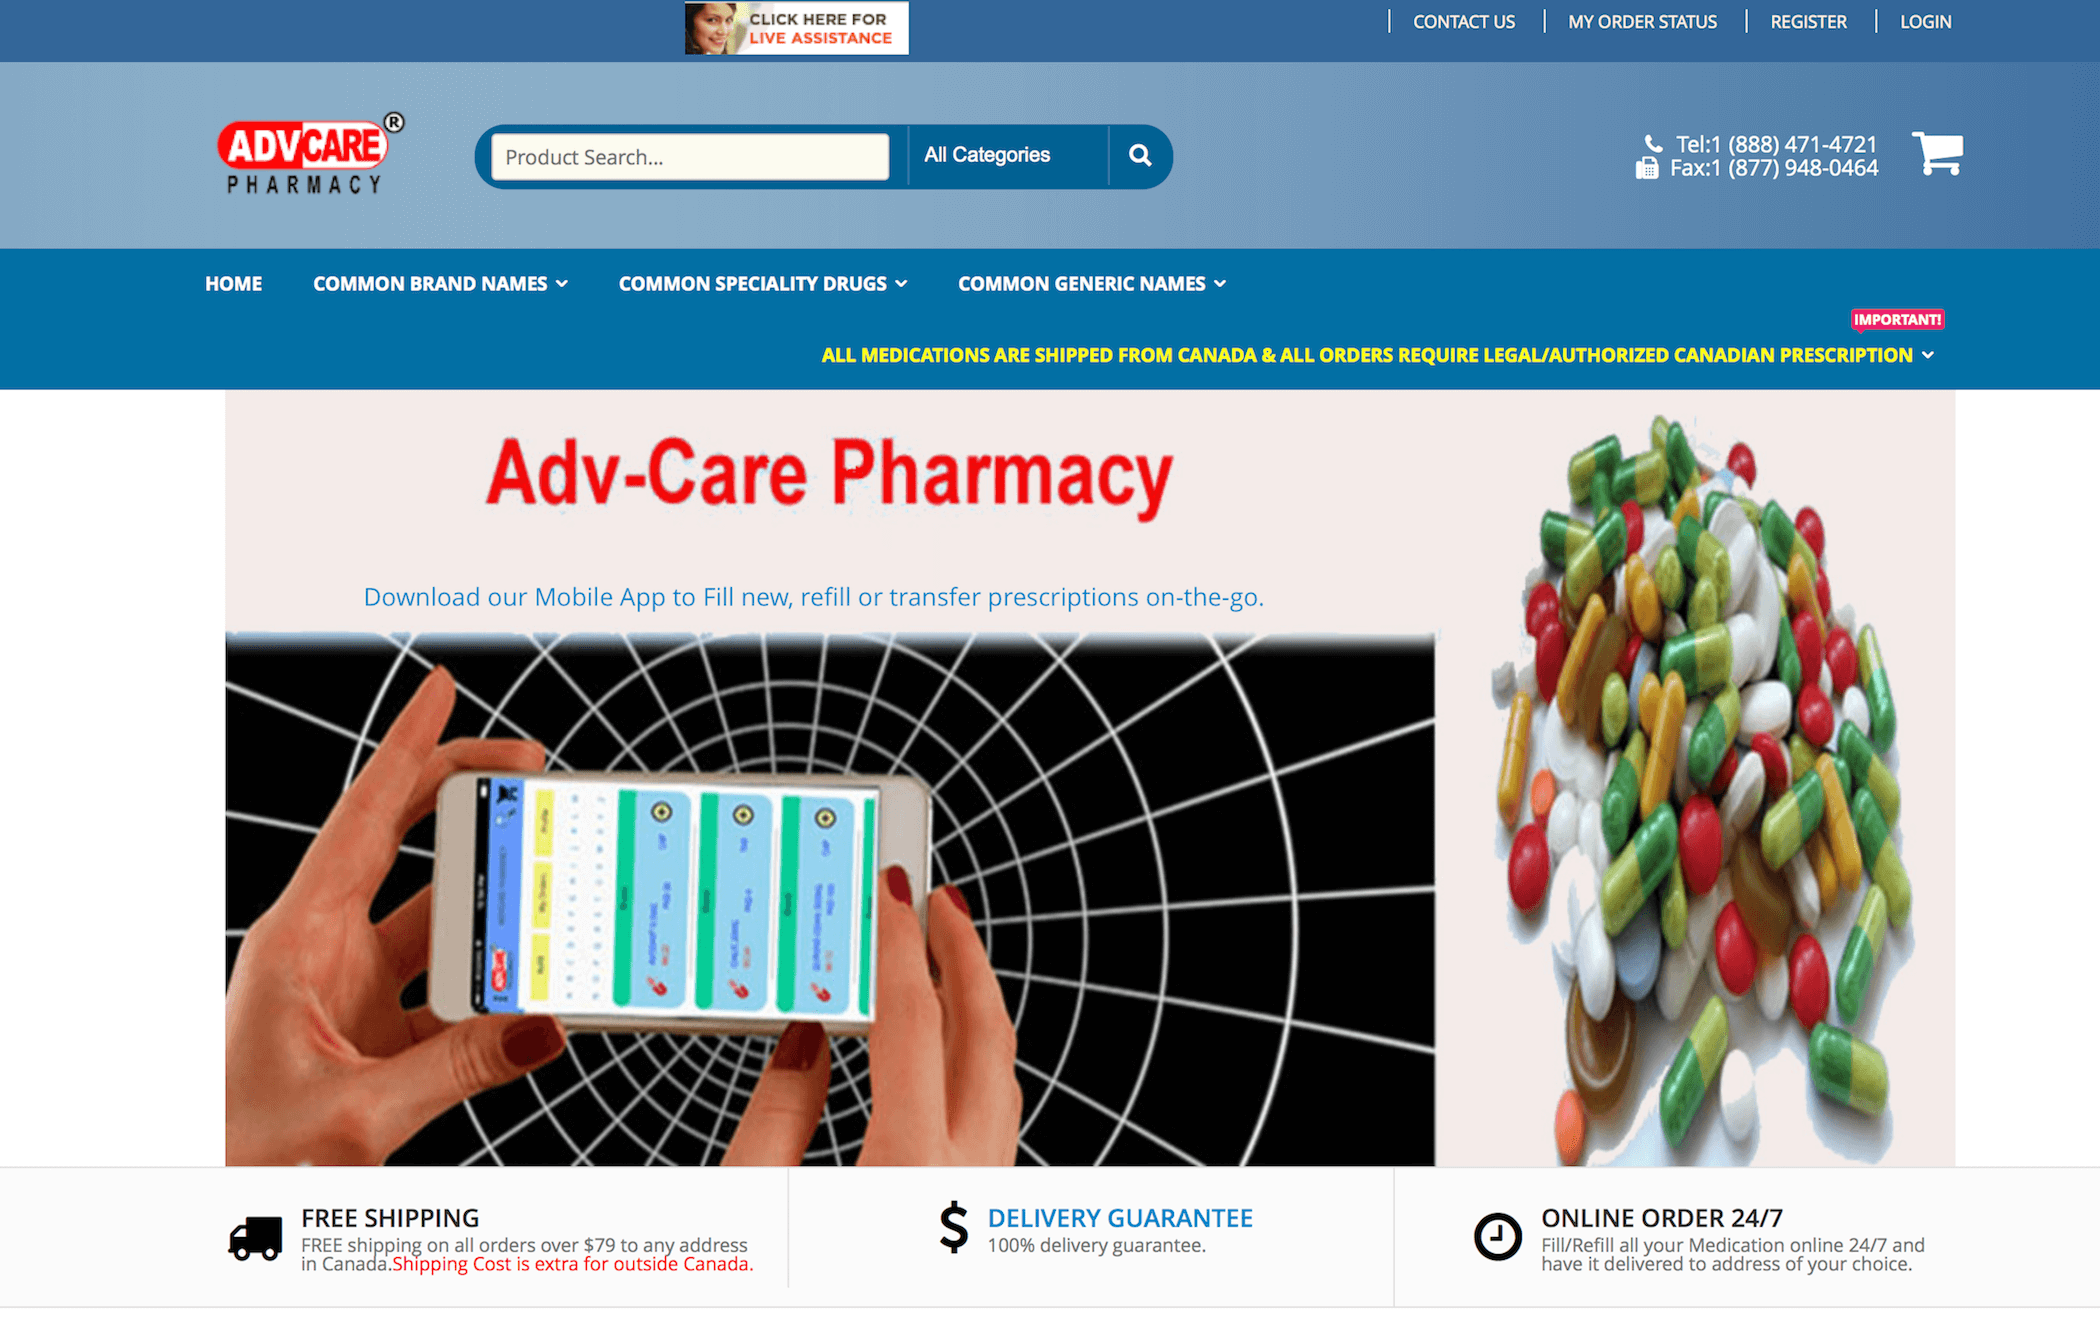 ADVPharmacy.com Pharmacy Review